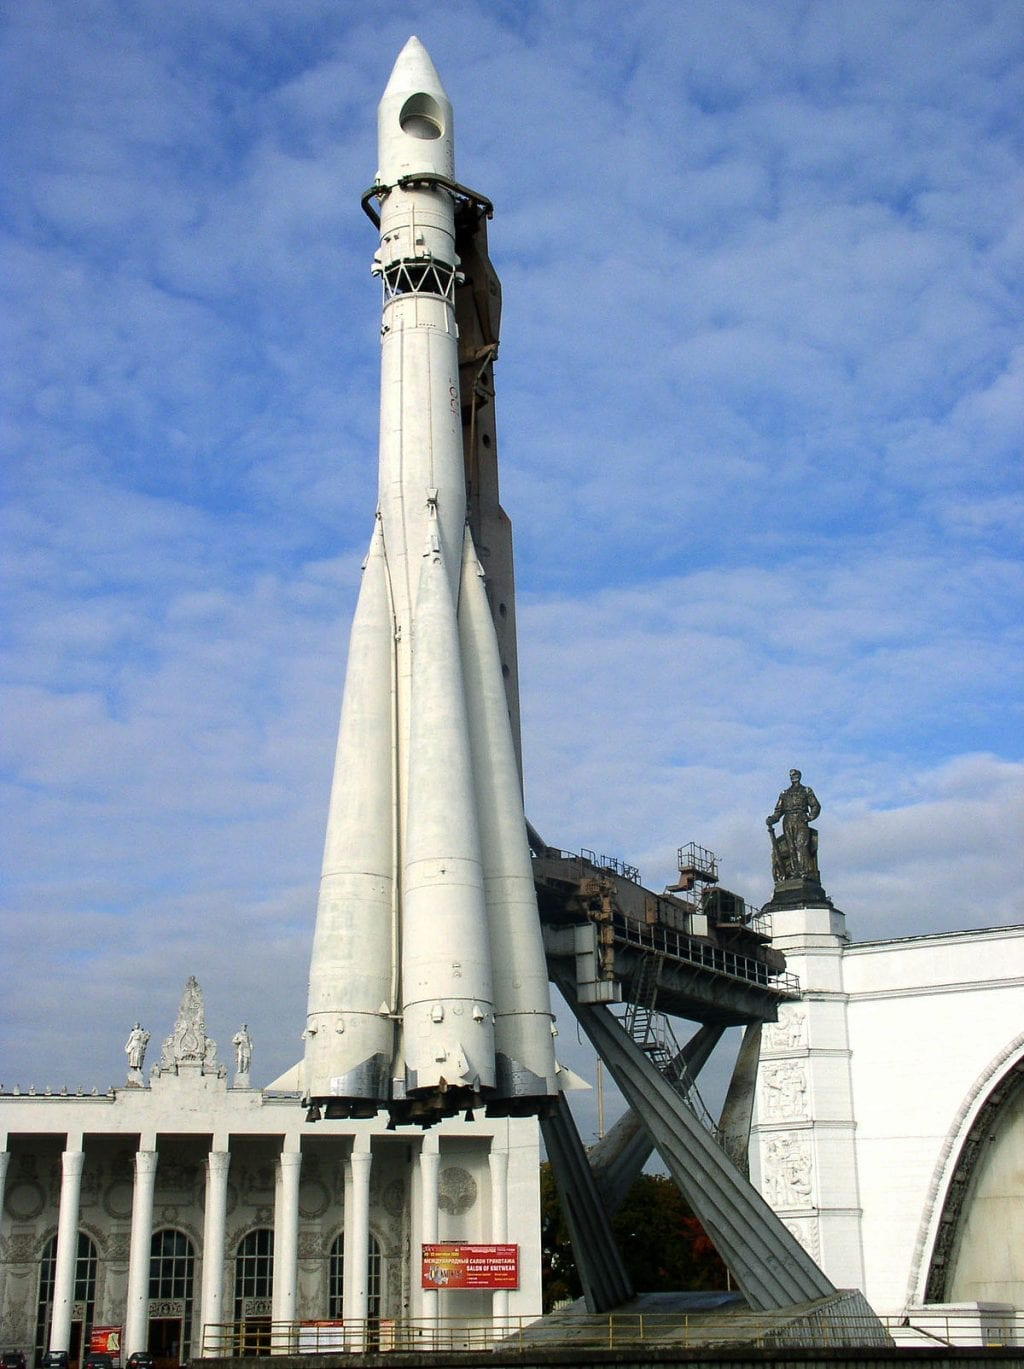 Russia claims that rocket launch failure was caused by assembly error